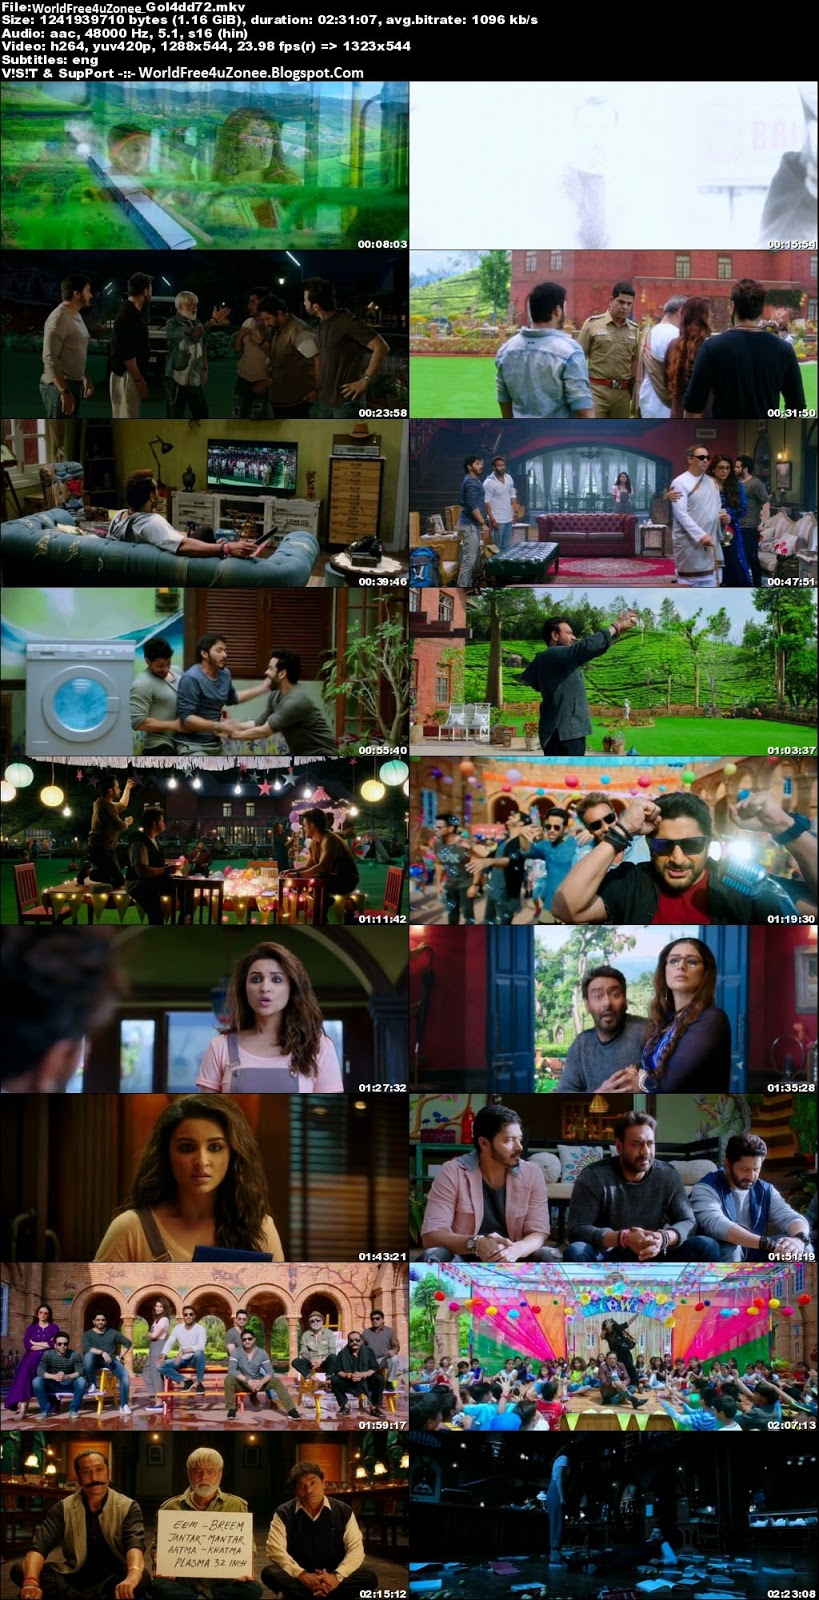 Golmaal Again (2017) Hindi DVDRip 720p 1.2GB Full Movie Free Download And Watch Online Latest Bollywood Hindi Movies 2017 Free At WorldFree4uZonee.Blogspot.Com